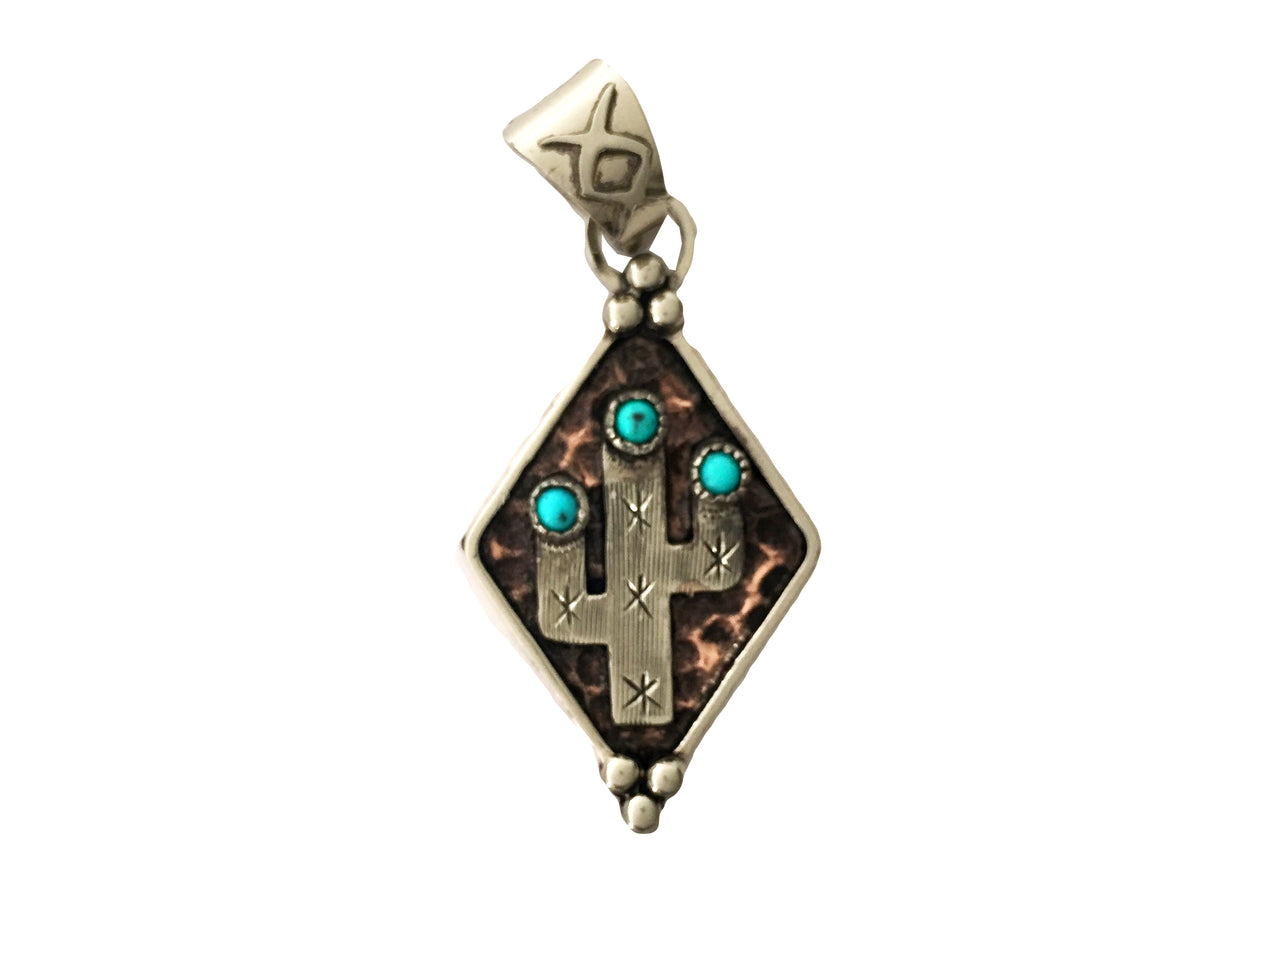 Hammered Copper Diamond Shaped Cactus Pendant